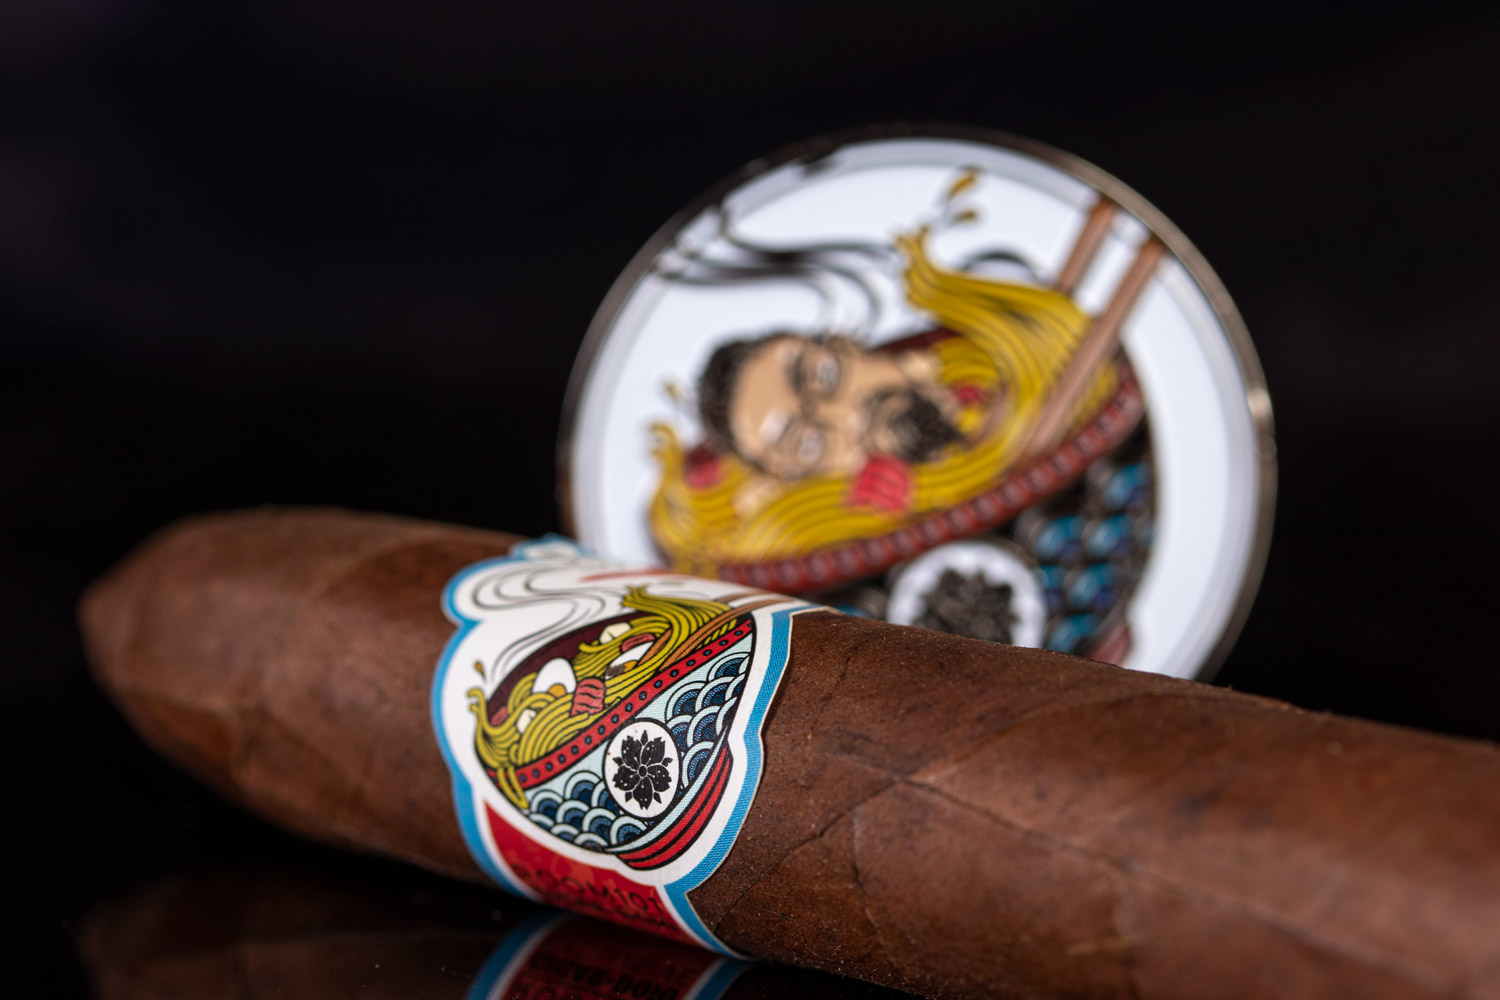 Cigar Dojo Room101 [untitled] 2019 cigar and challenge coin